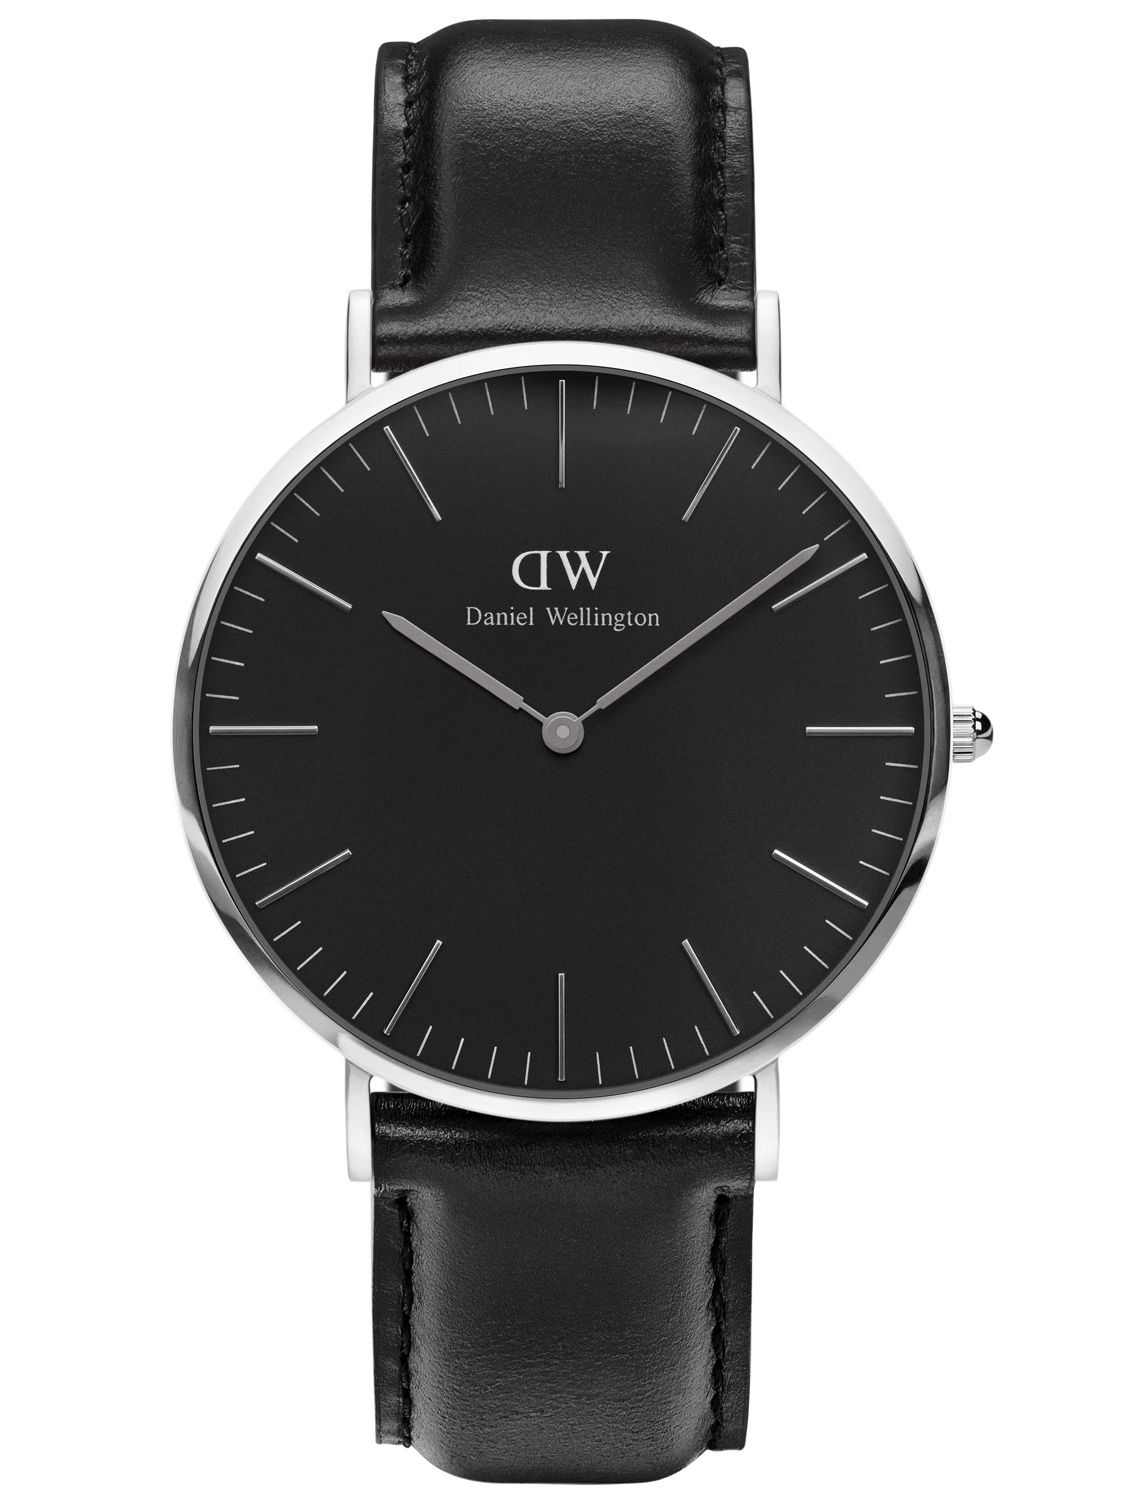 Daniel Wellington DW00100133 Herrenuhr Sheffiel...